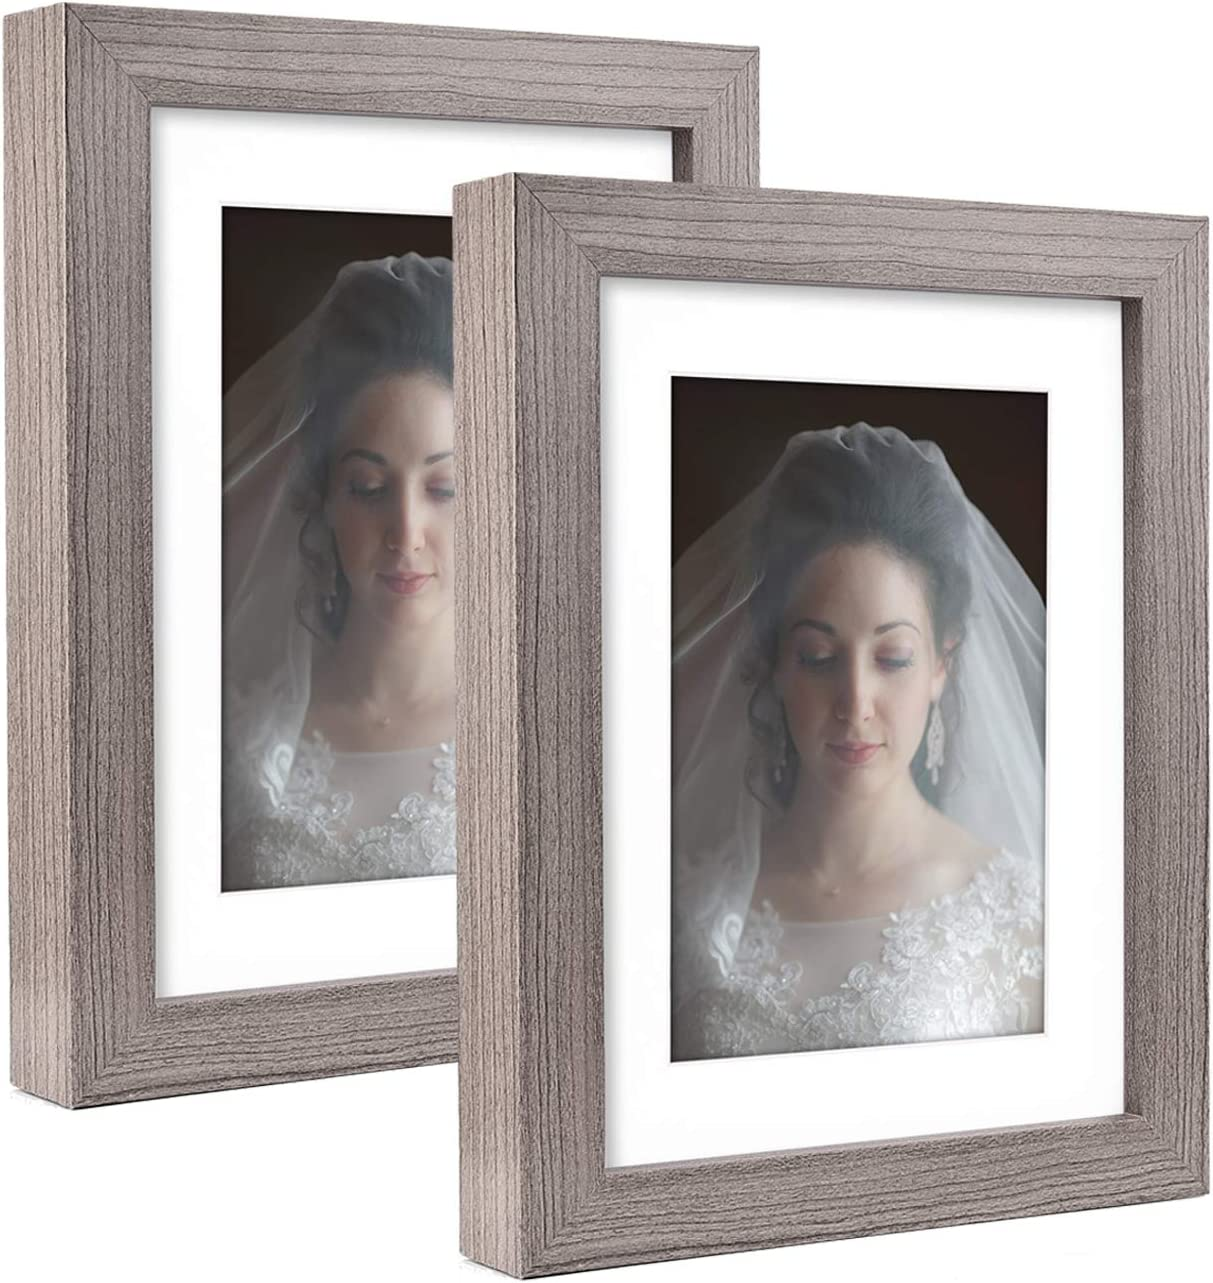 Metrekey 5x7 Picture Frame with Removable Mat for 3.5x5 Pictures Wood Grain 5x7 Photo Frames for Wall Decor and Tabletop Display Grey 2 Pack